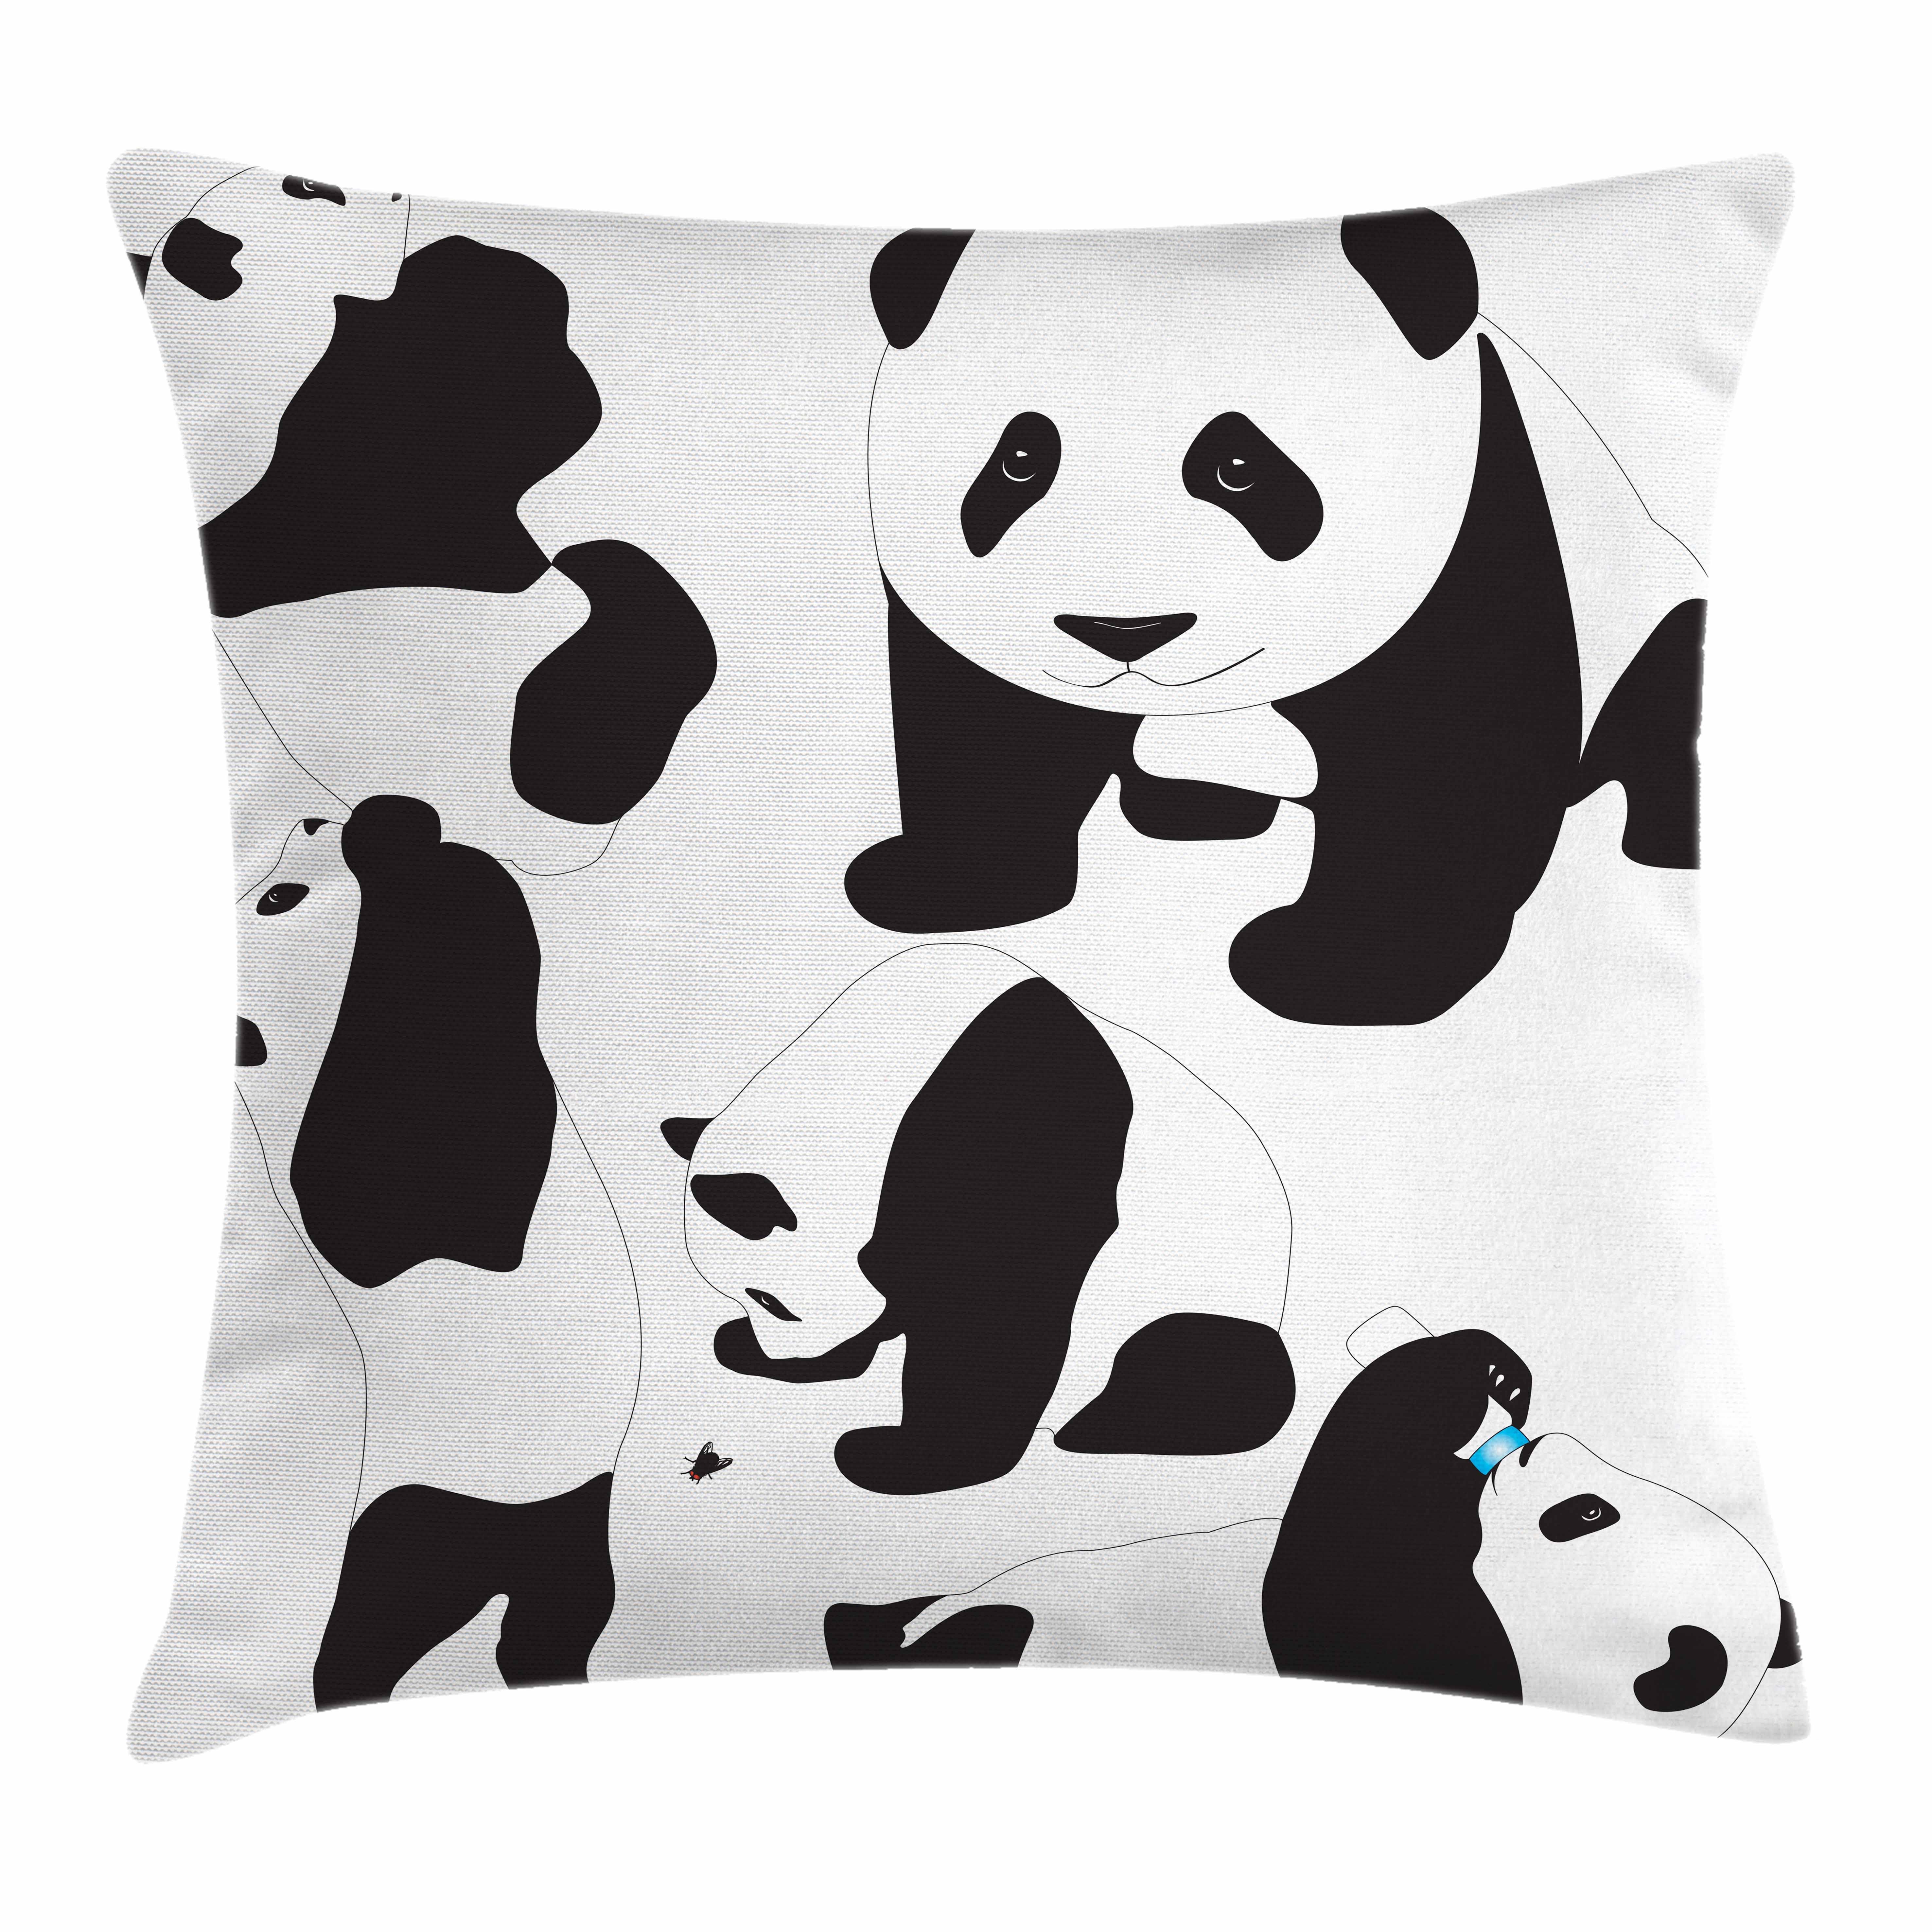 Zoo Throw Pillow Cushion Cover, Drawing of Baby Pandas Milk Bottle Fly Cute Adorable Animal Figures Child Mammal, Decorative Square Accent Pillow Case, 16 X 16 Inches, Black and White, by Ambesonne